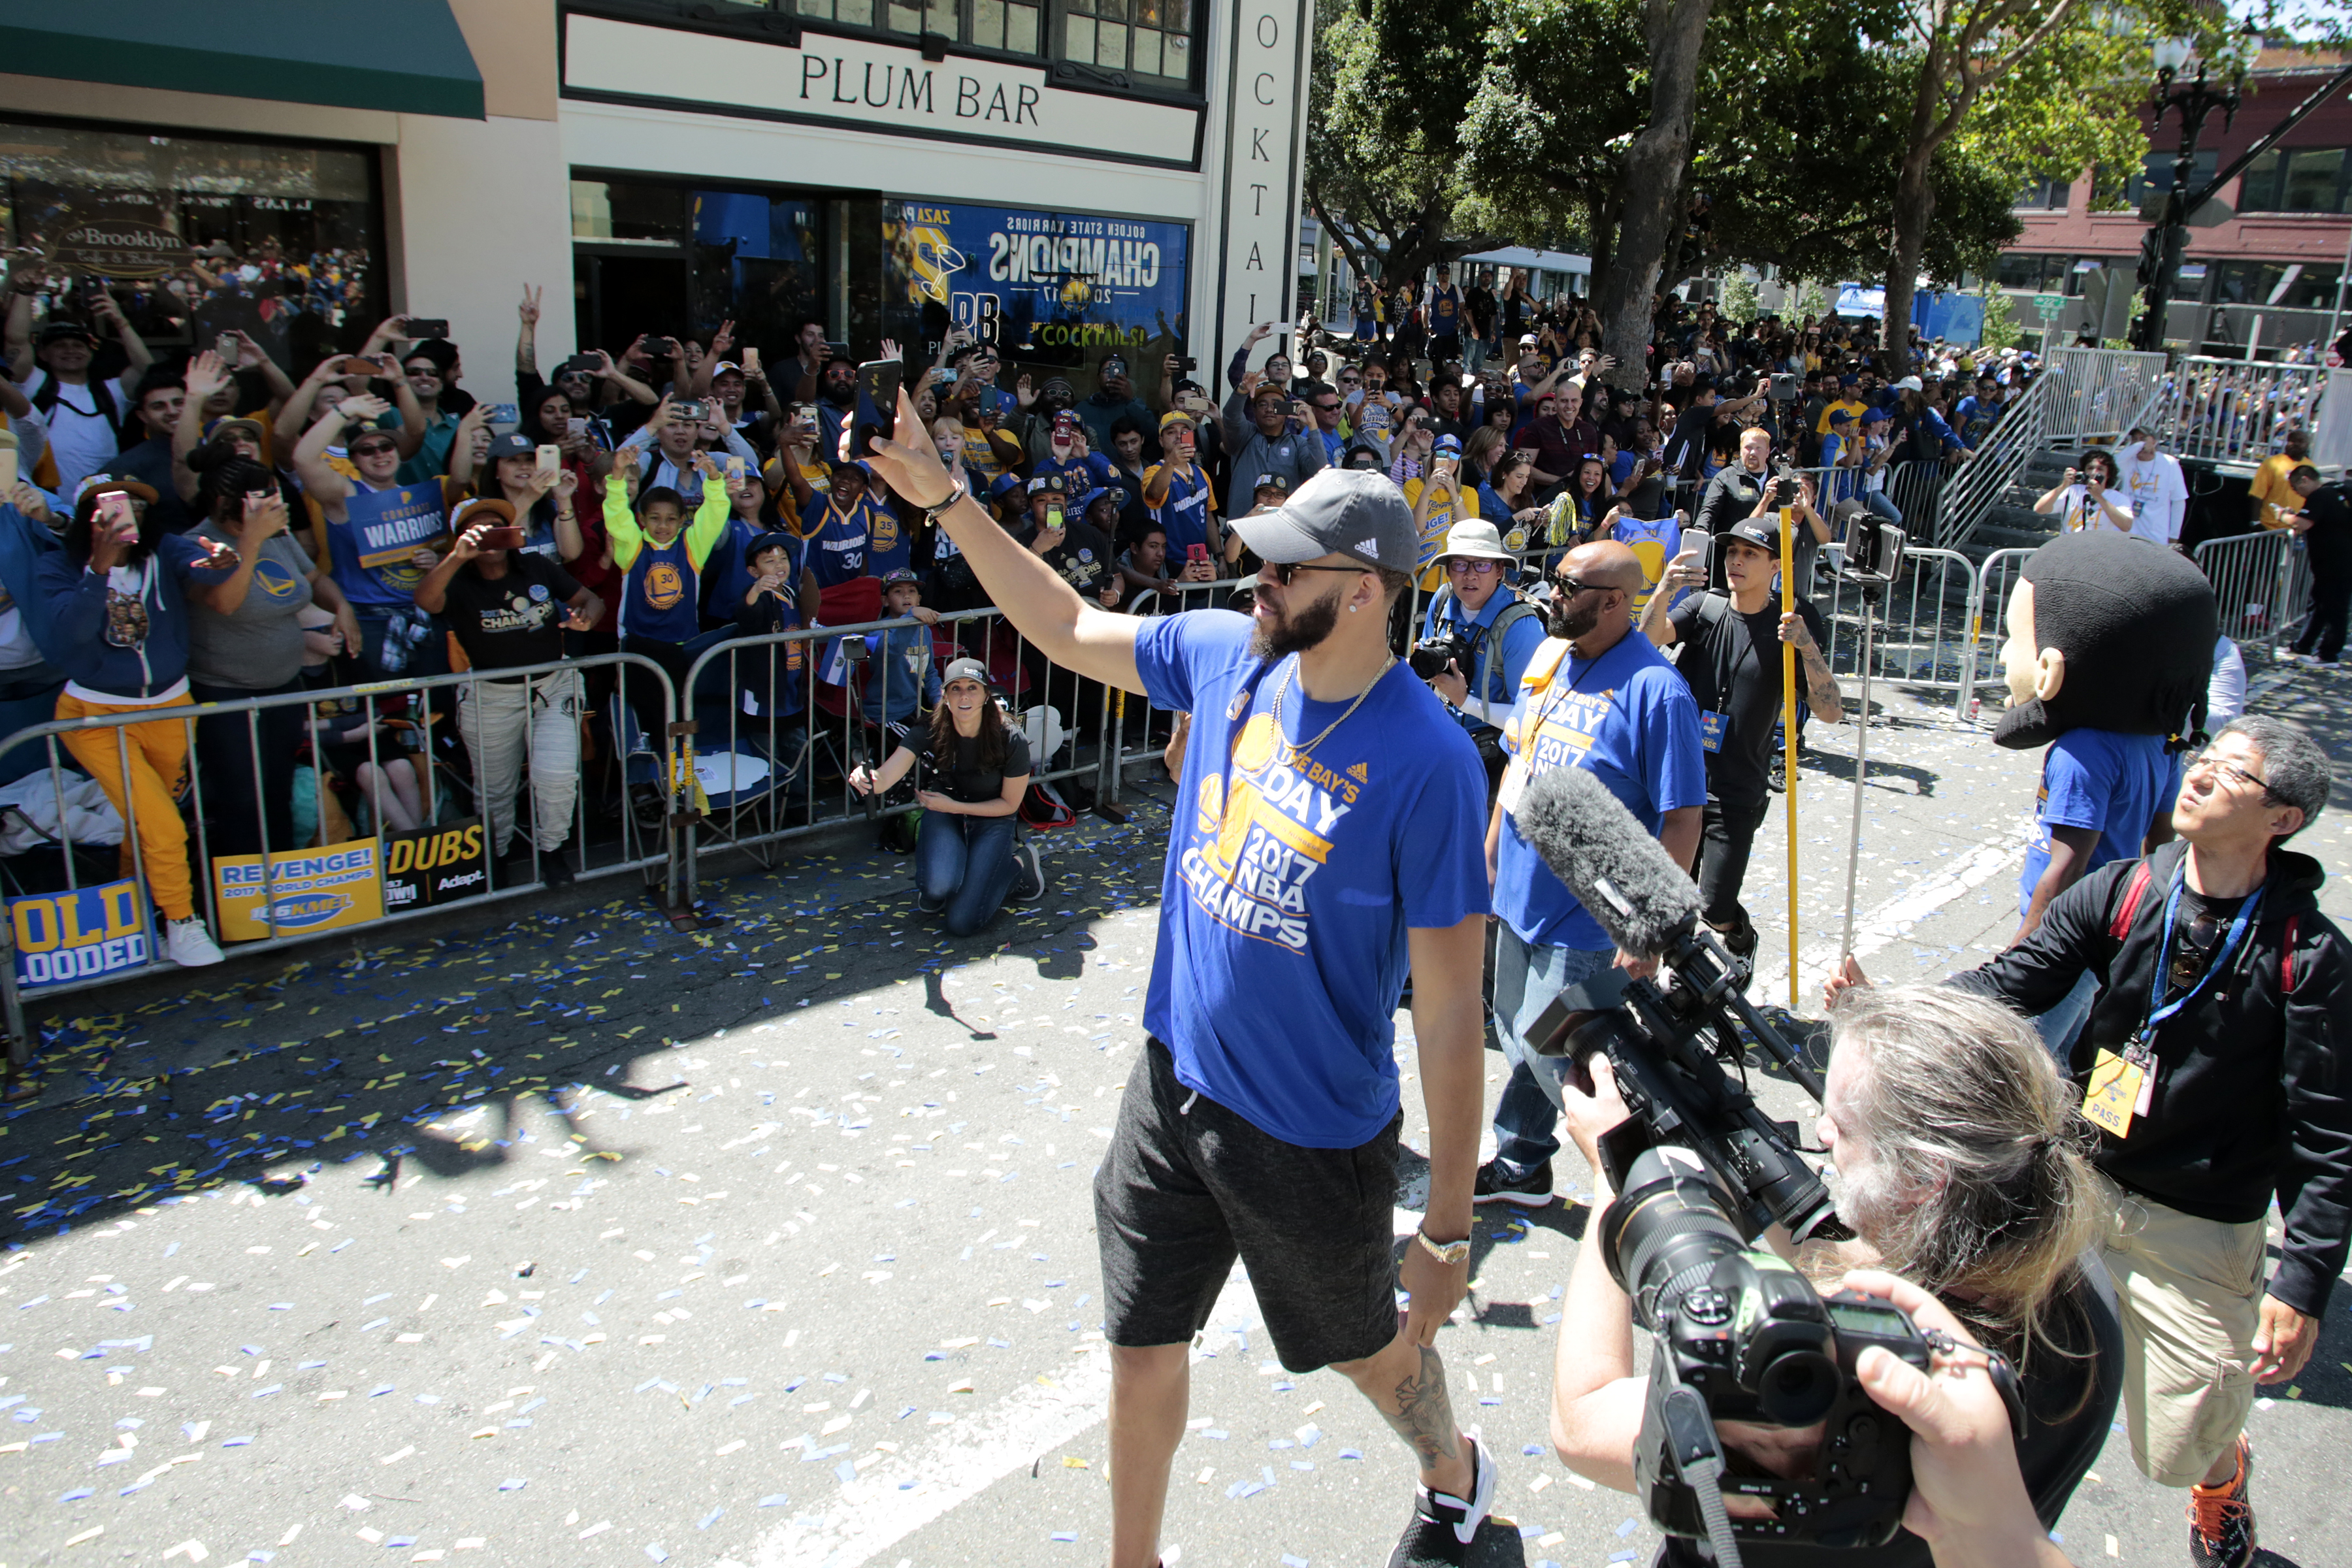 696699080-golden-state-warriors-victory-parade-and-rally.jpg